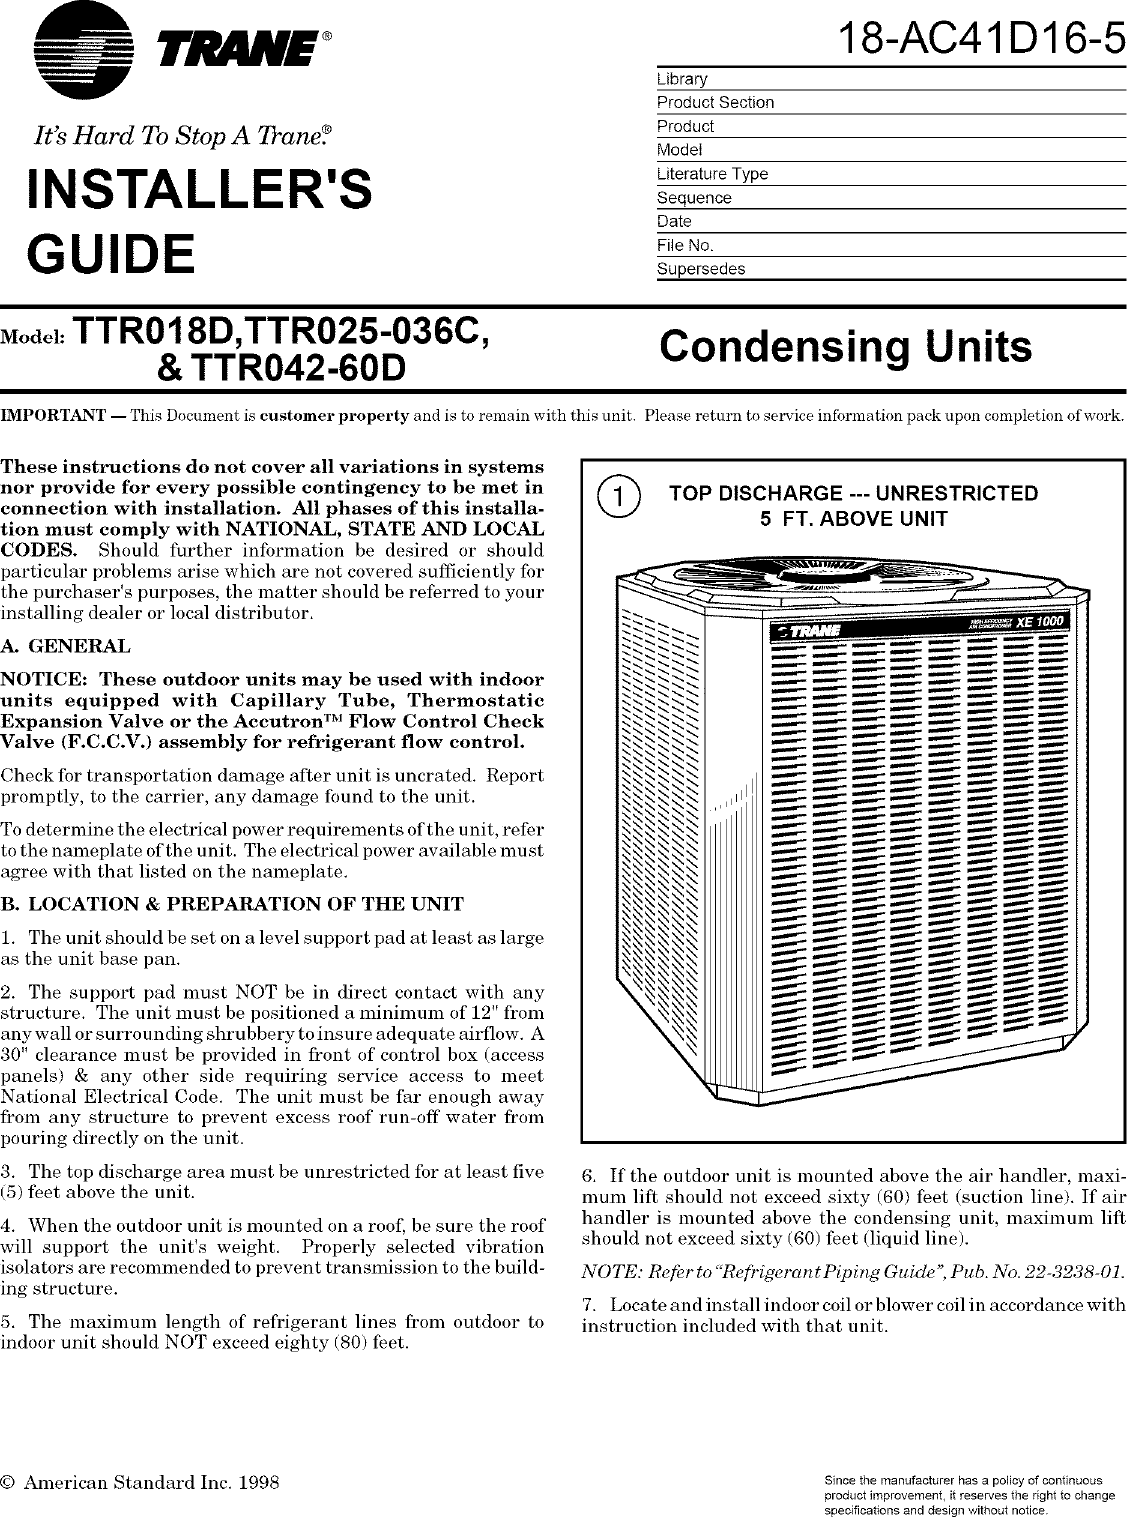 samsung heat pump user manual